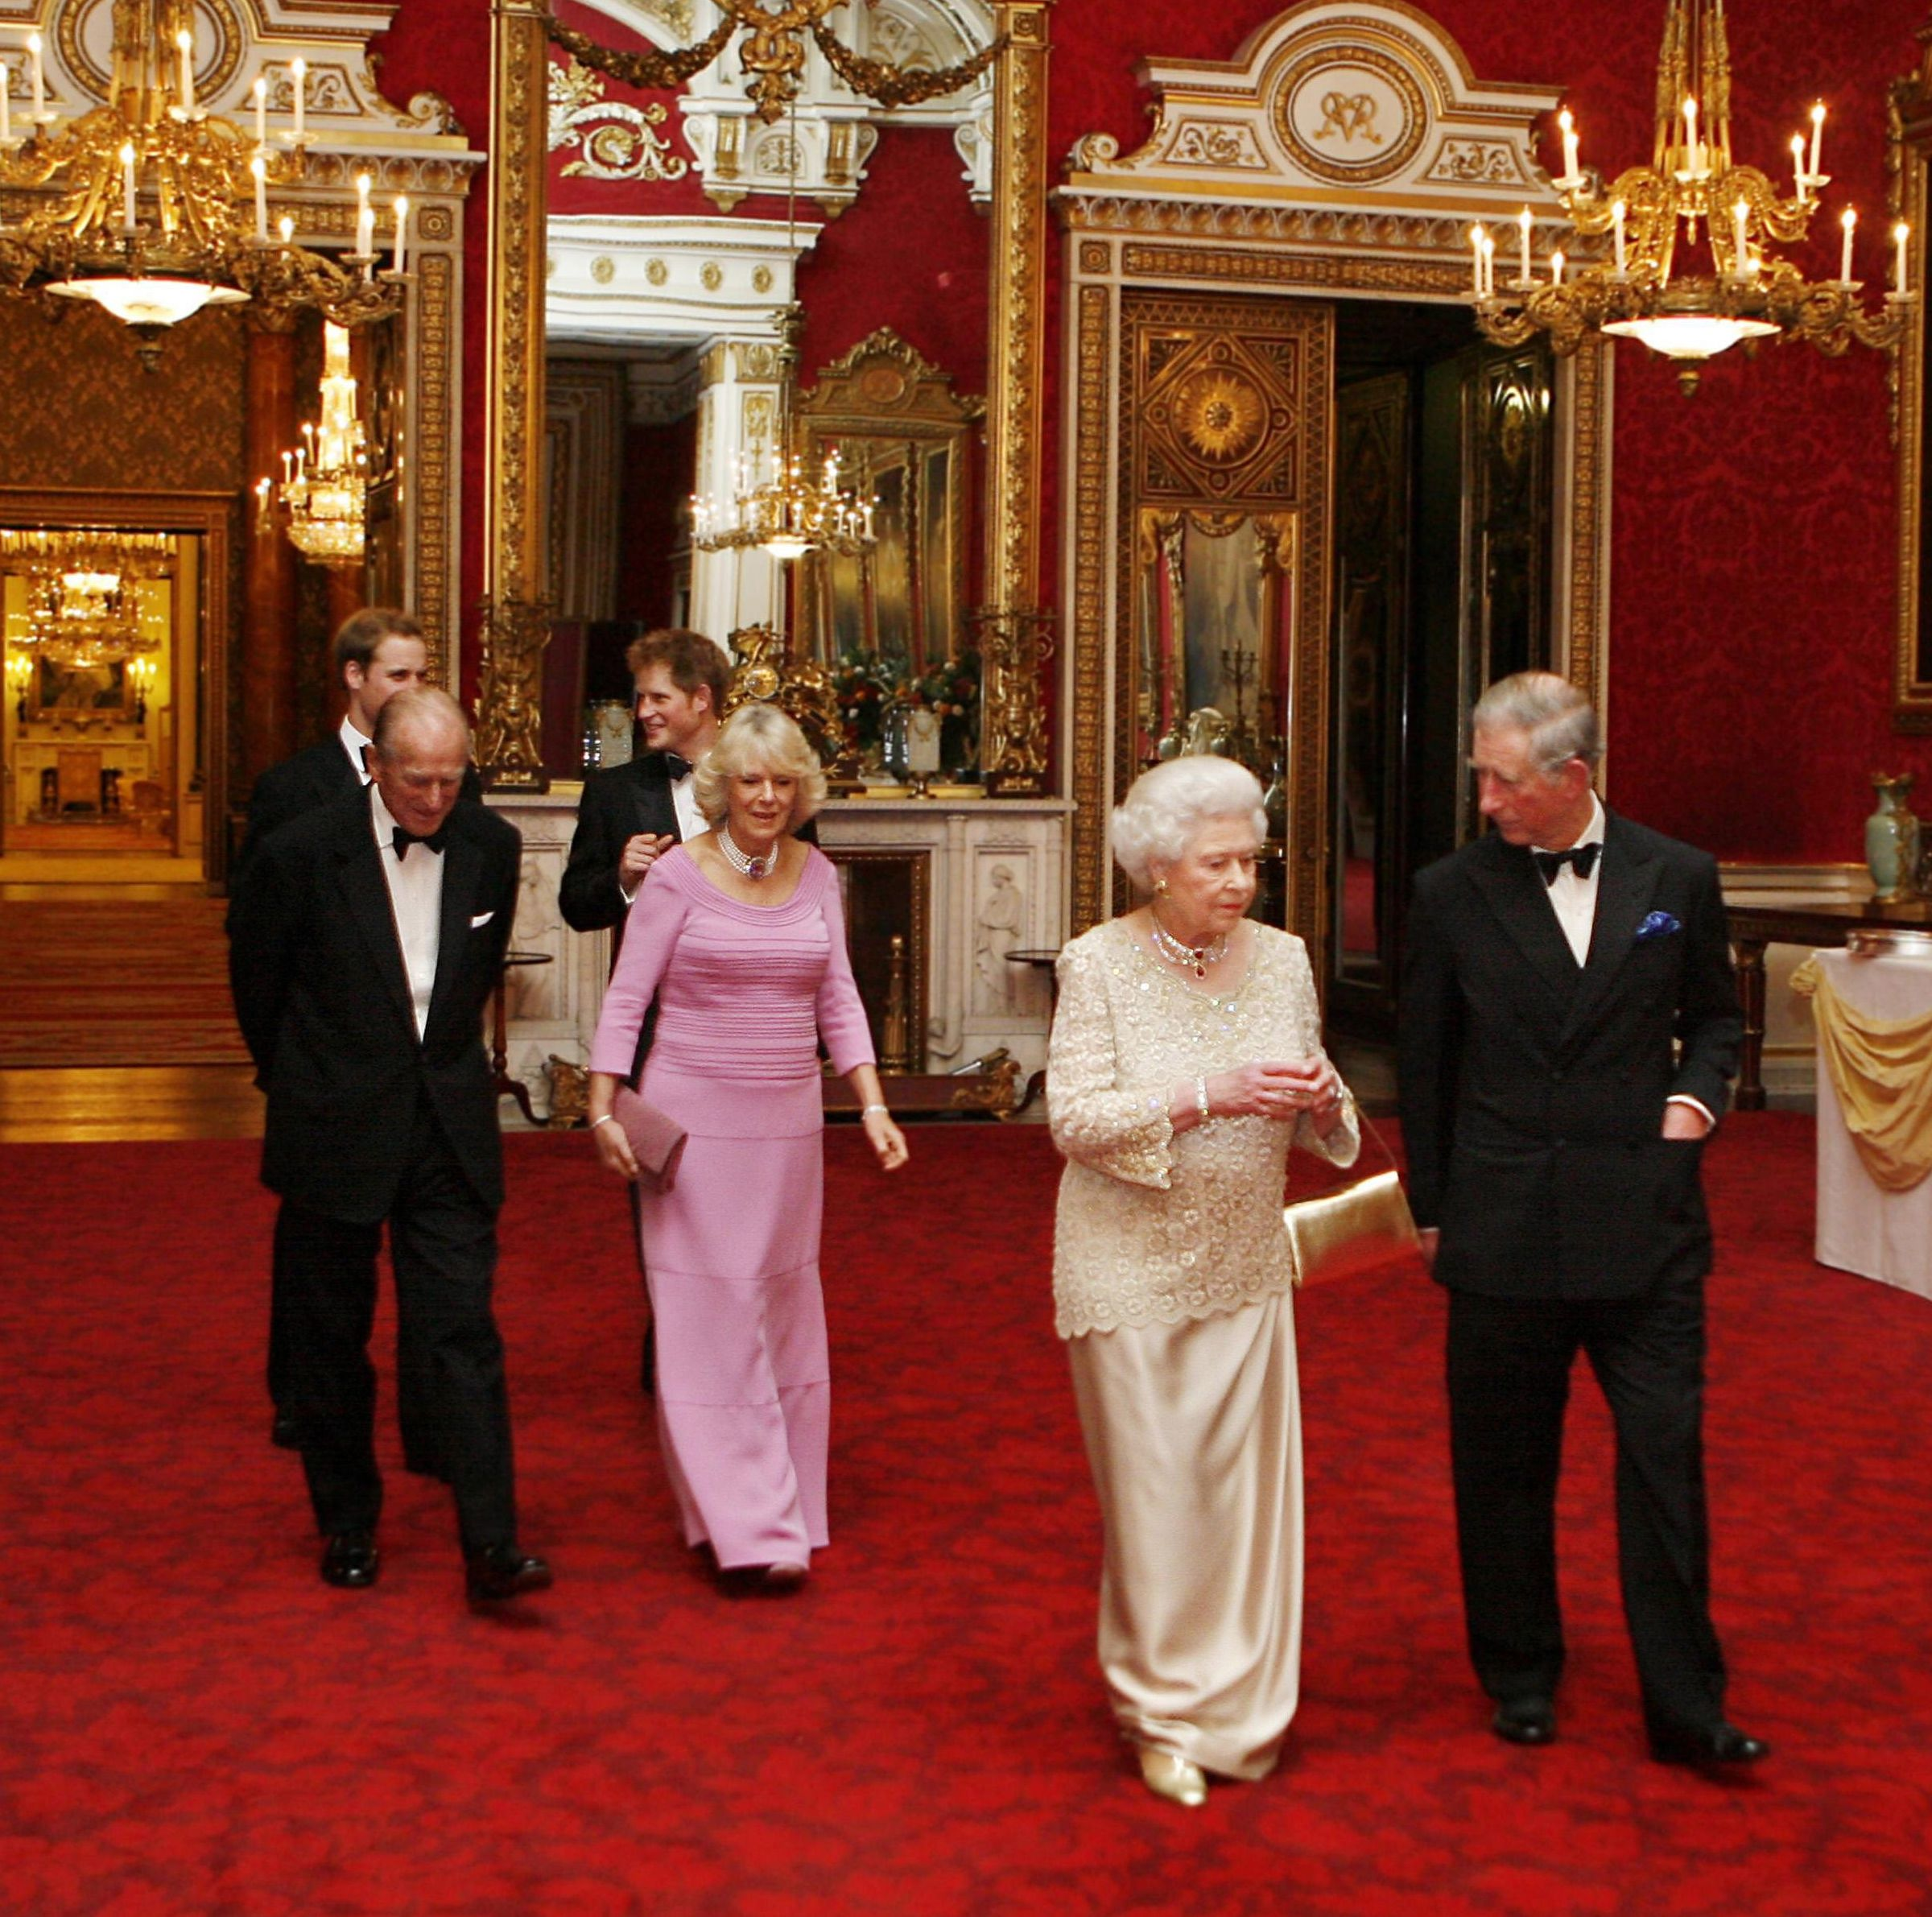 Queen Elizabeth hosts the offiical Gala Party for Prince Charles's 60th birthday.